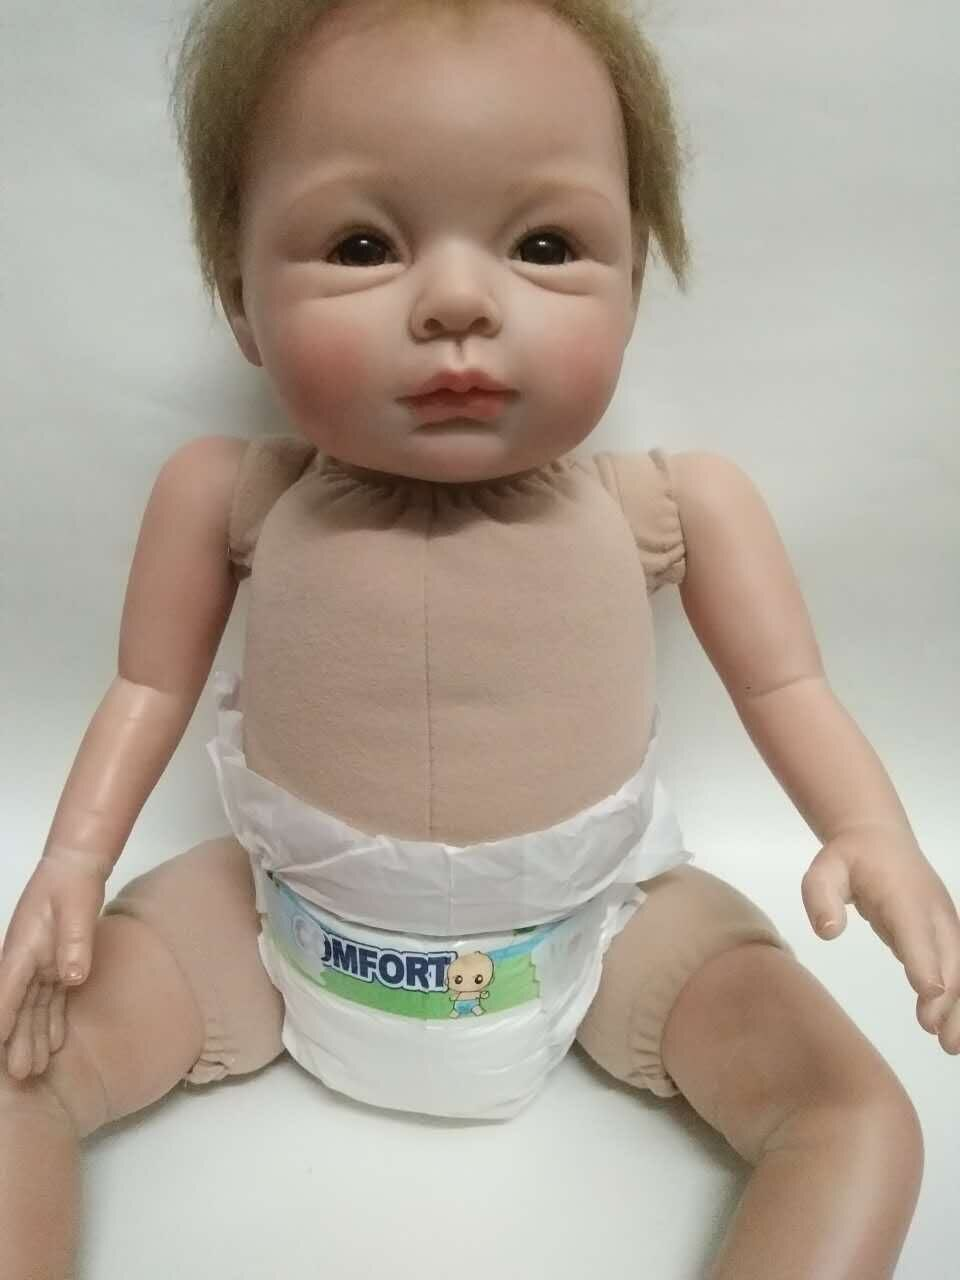 Real Looking Reborn Dolls Babies Bonecas Newborn Toys for